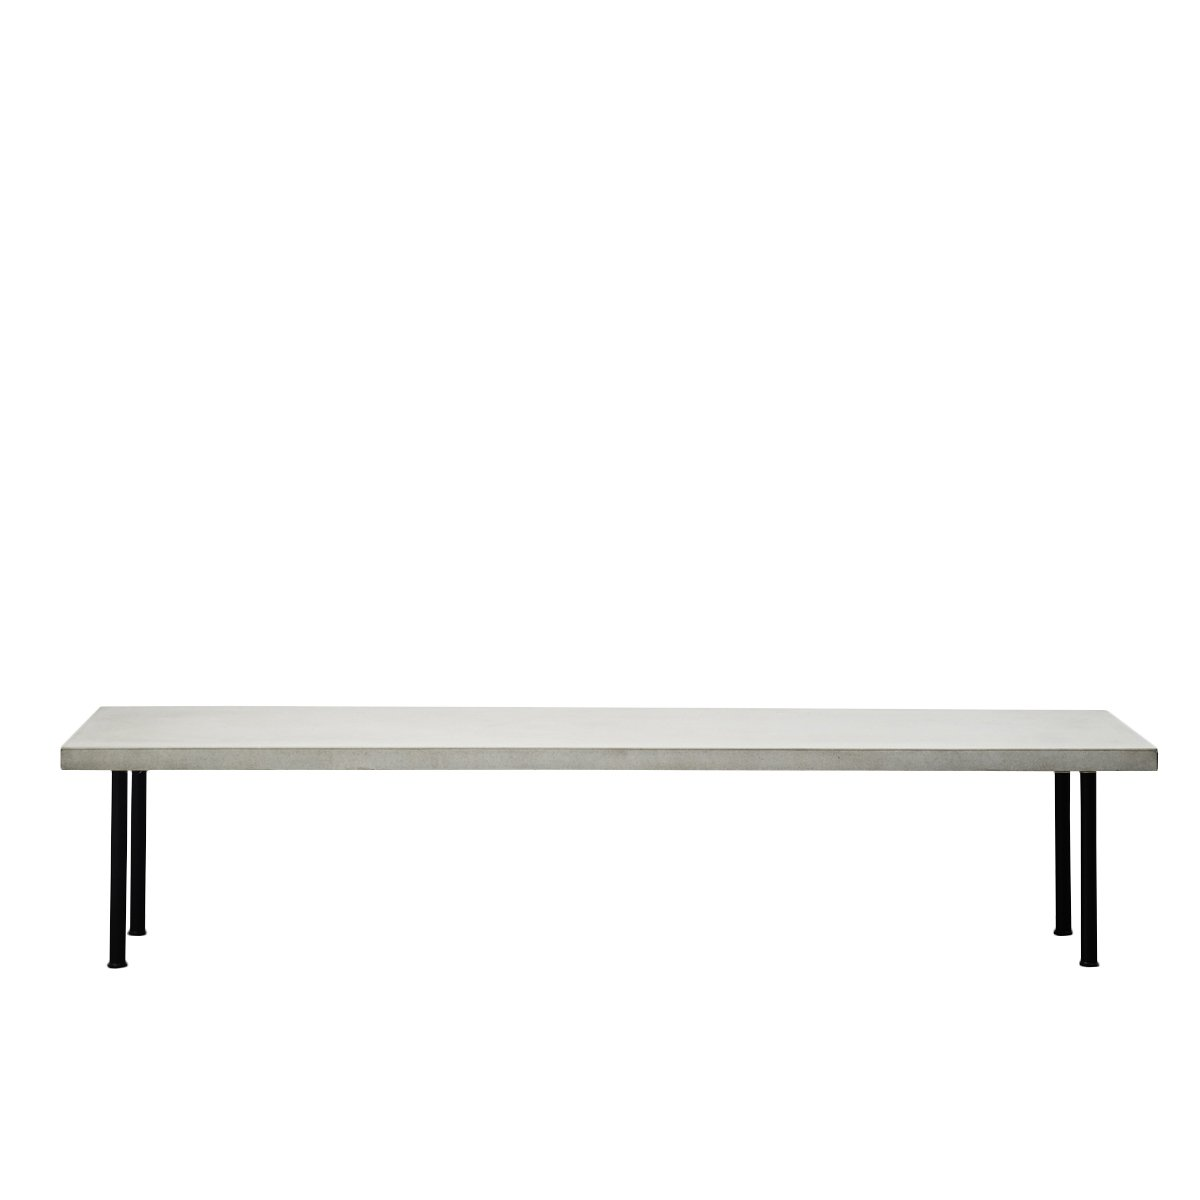 Bella Concrete Bench by Slabs by Design, a Chairs for sale on Style Sourcebook